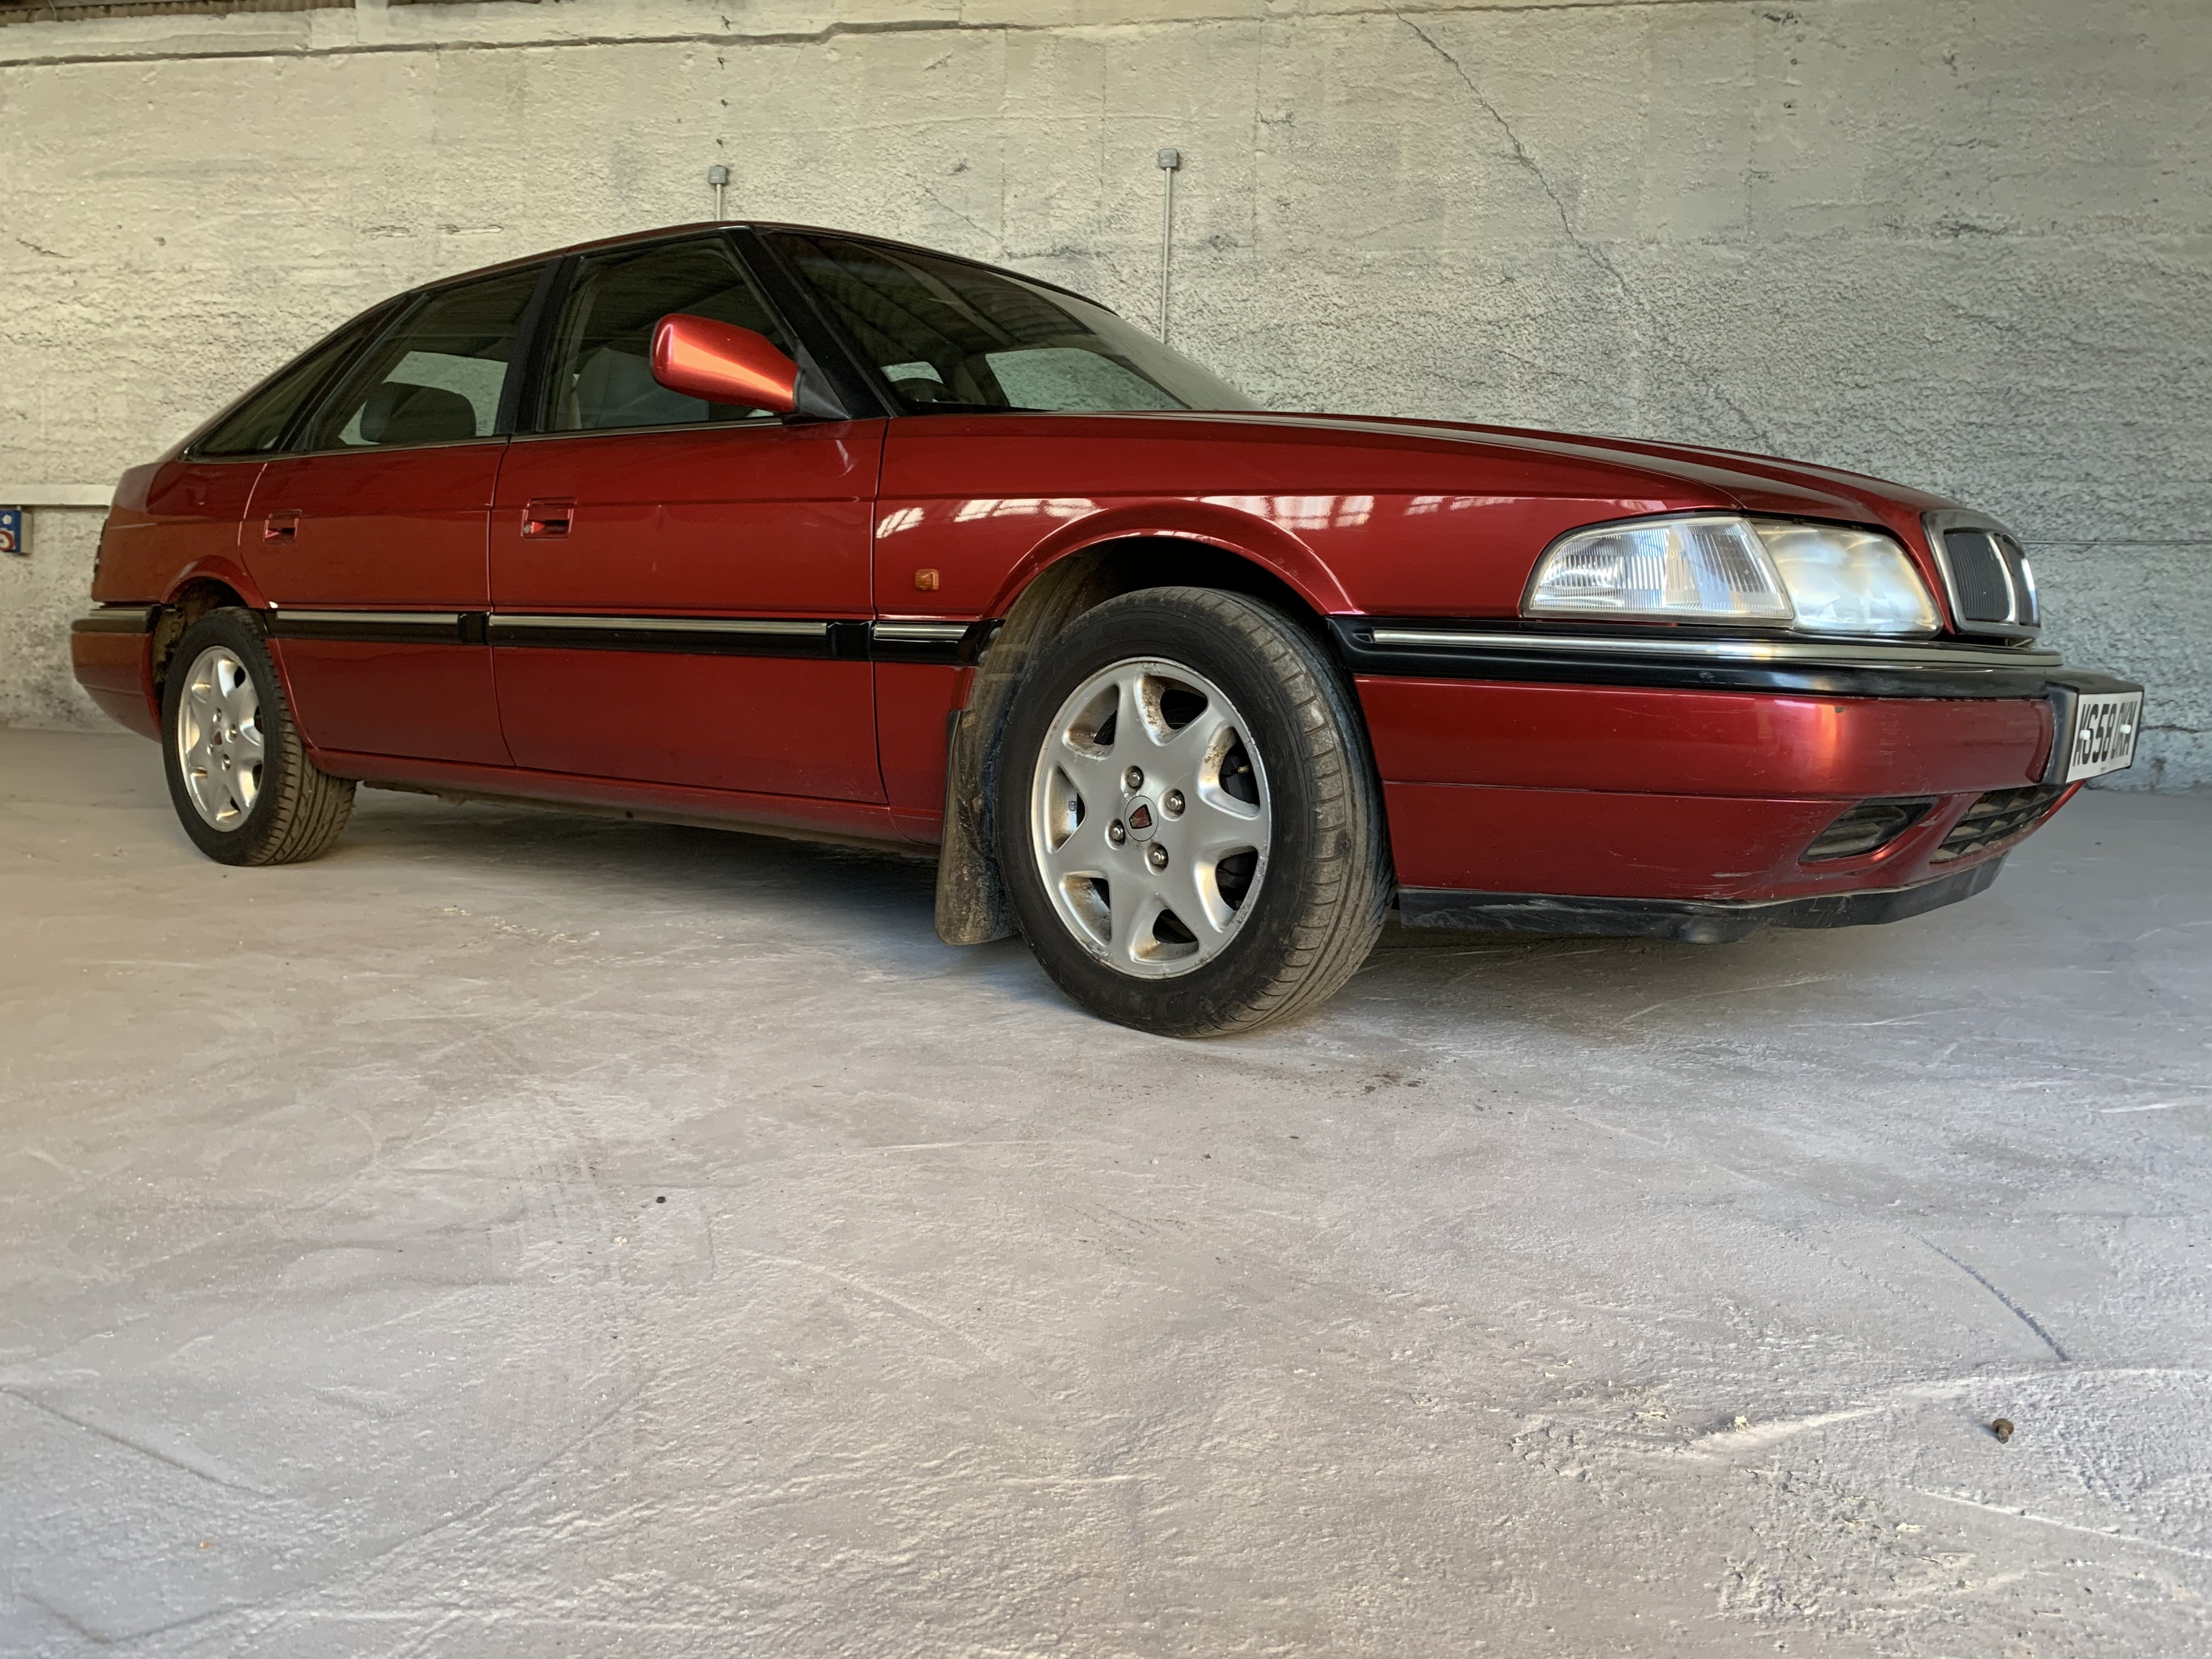 Picture of 1995 Rover 800 nightfire RED fast back